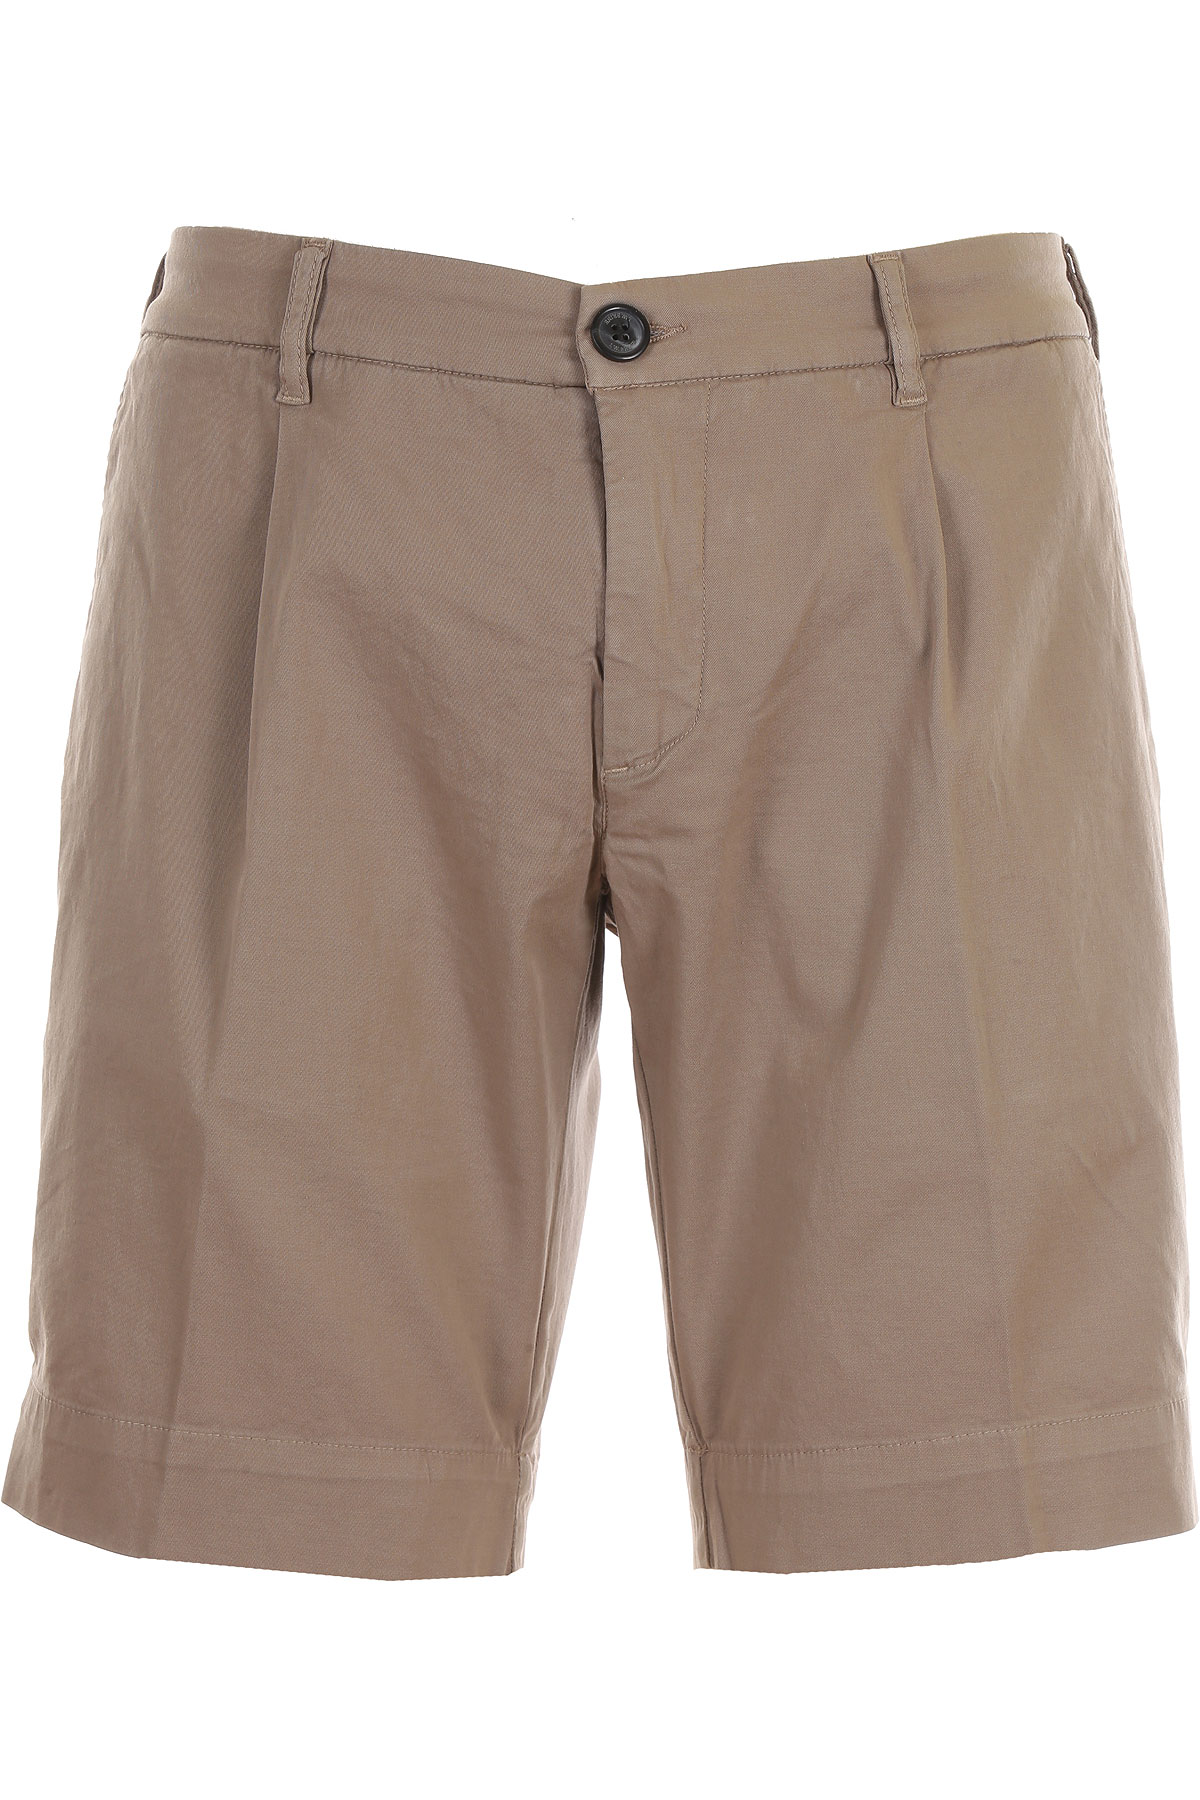 J.W. Brine Shorts for Men On Sale, Beige, Cotton, 2019, 30 32 34 36 38 40